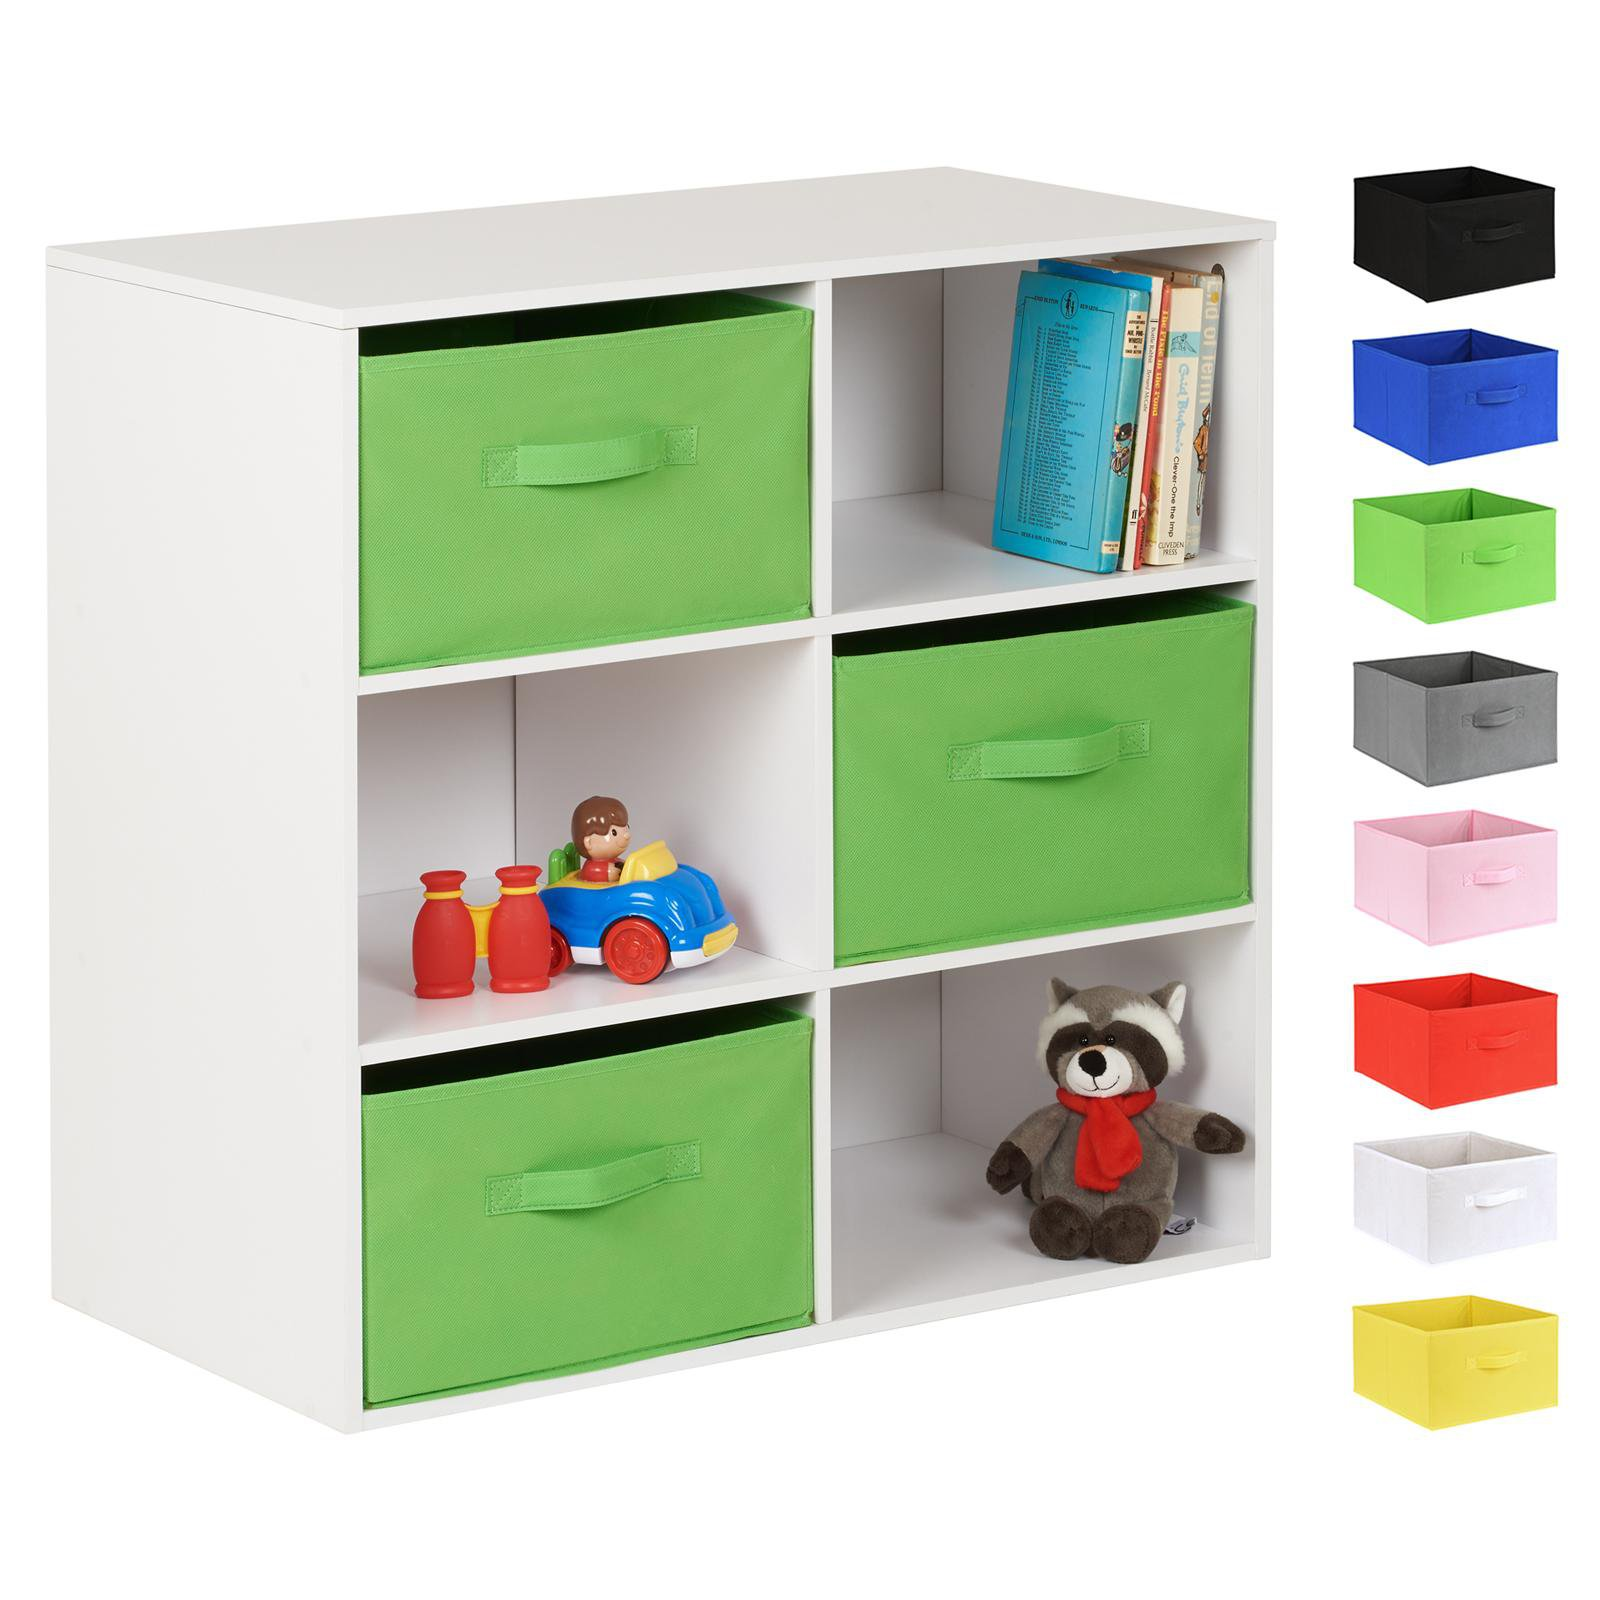 image-Hartleys White 6 Cube Kids Storage Unit & 3 Handled Box Drawers - Green